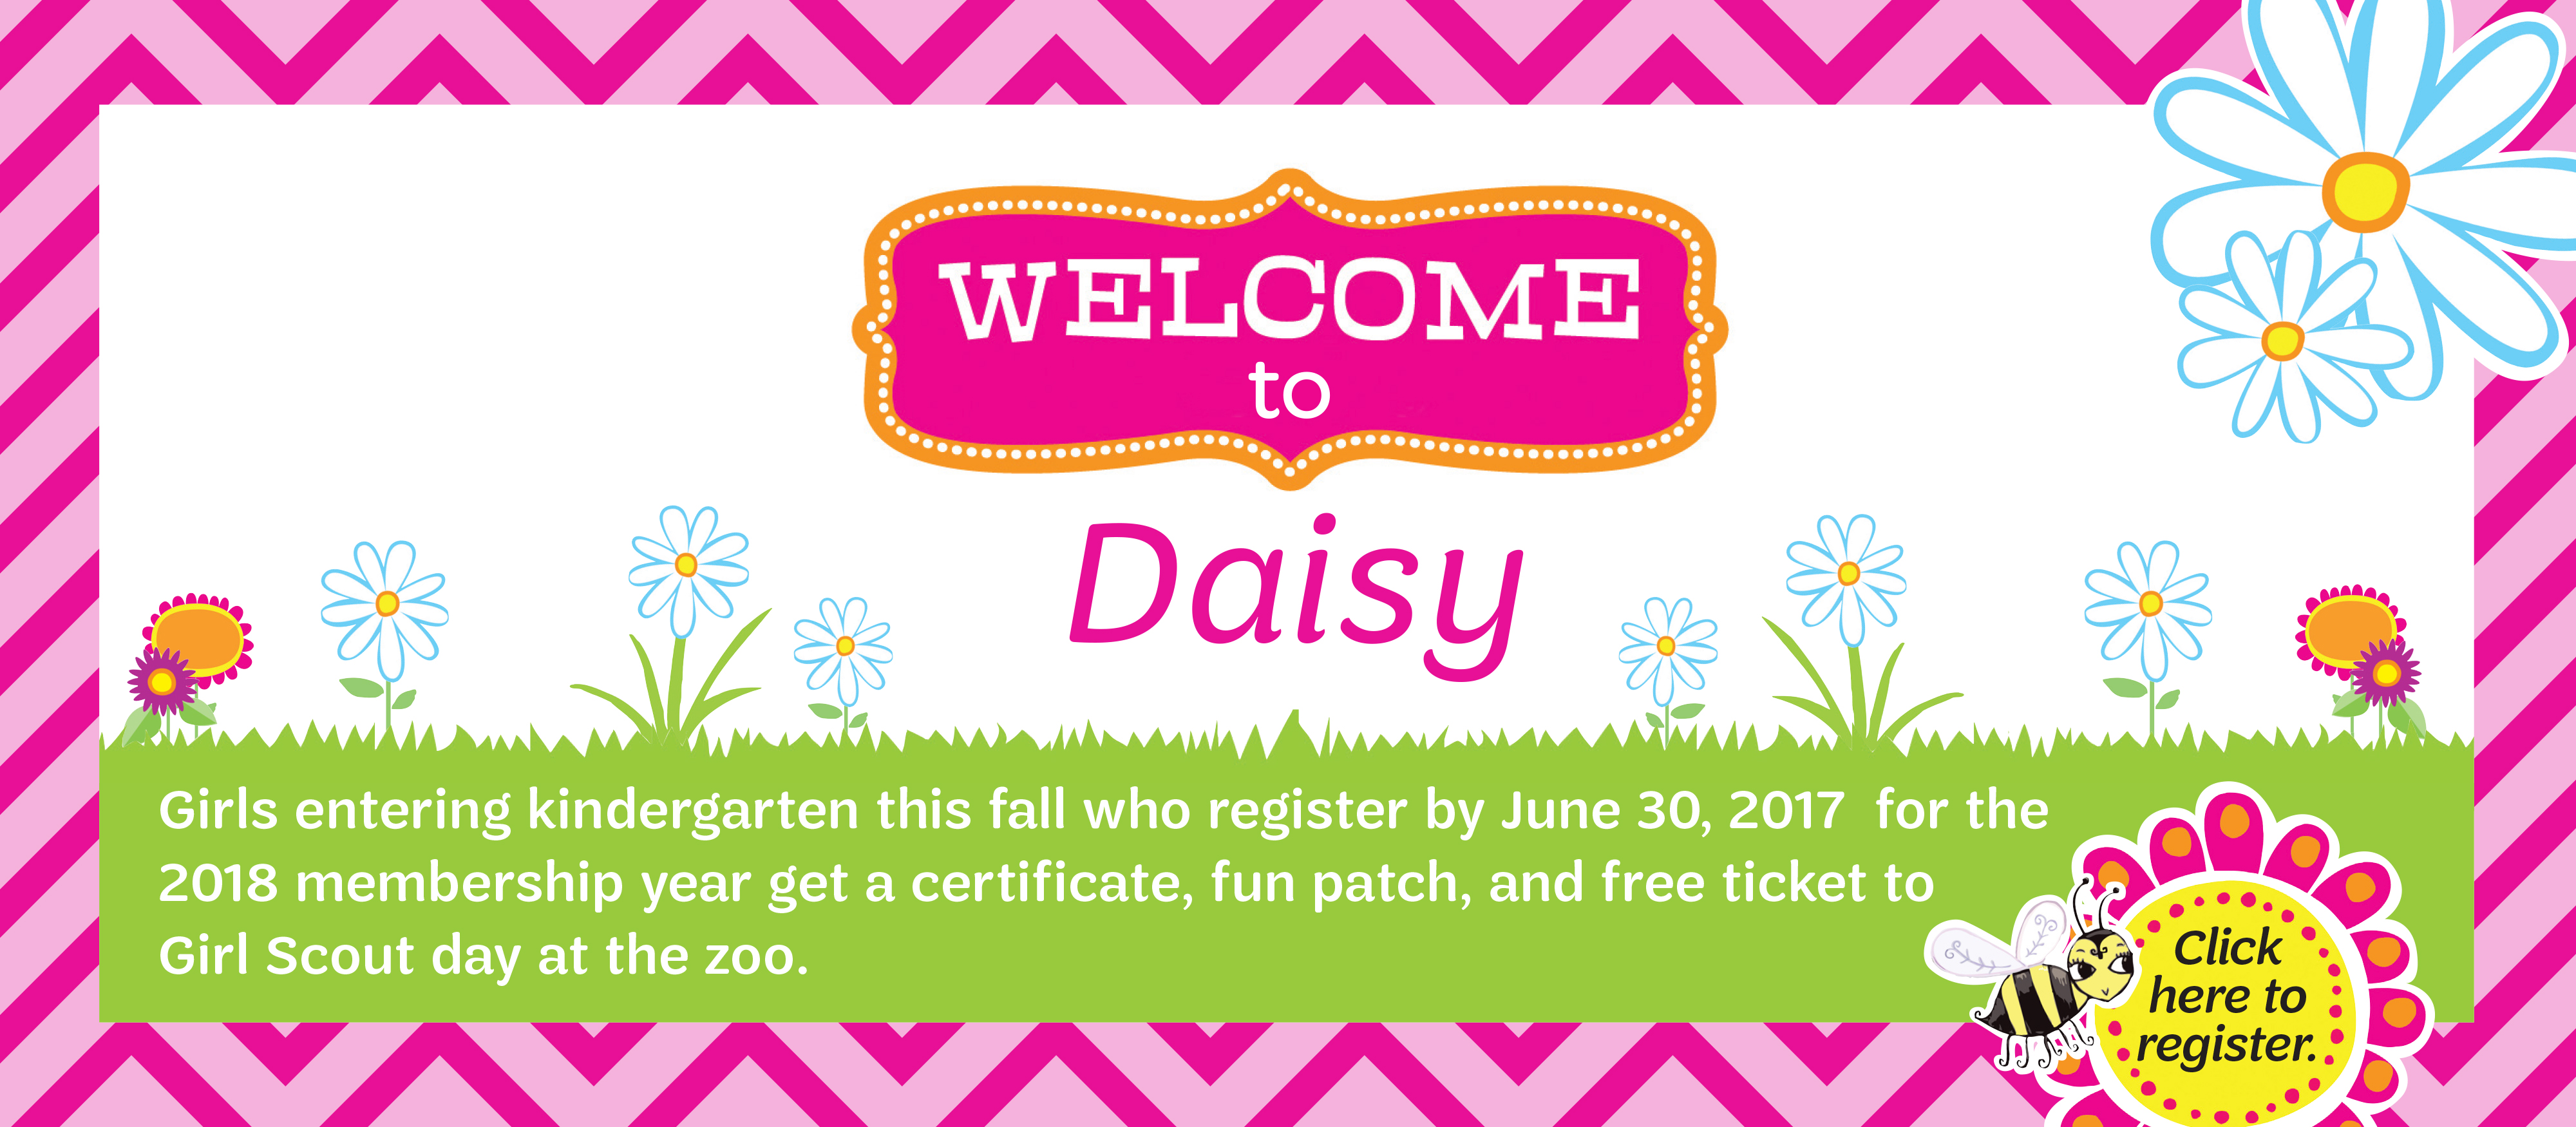 Welcome to Daisy banner